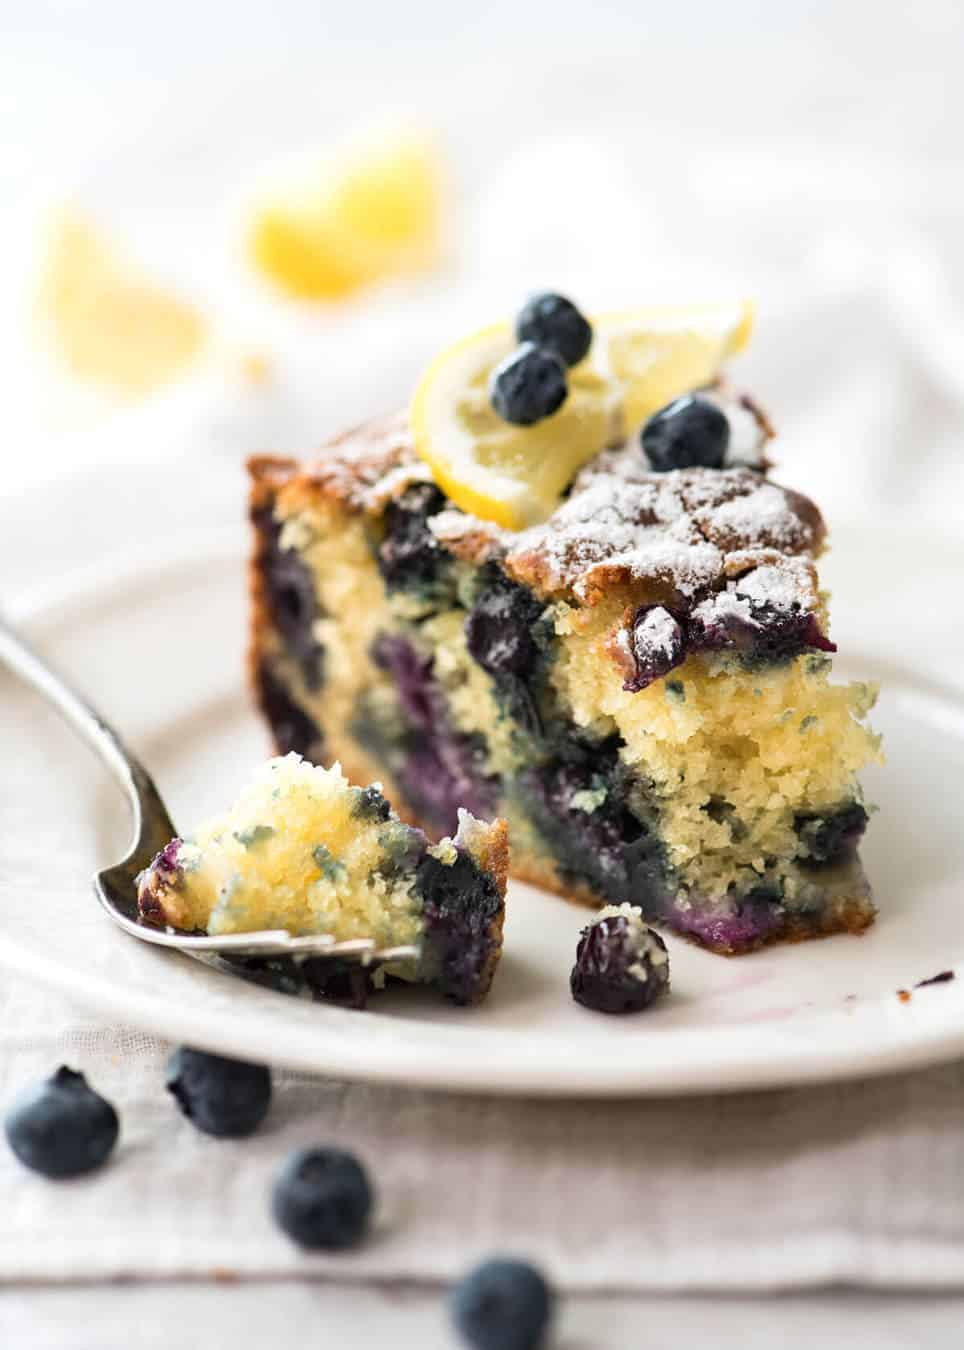 A lovely Blueberry Lemon Yoghurt Cake that's incredibly moist and astonishingly quick to make. www.recipetineats.com